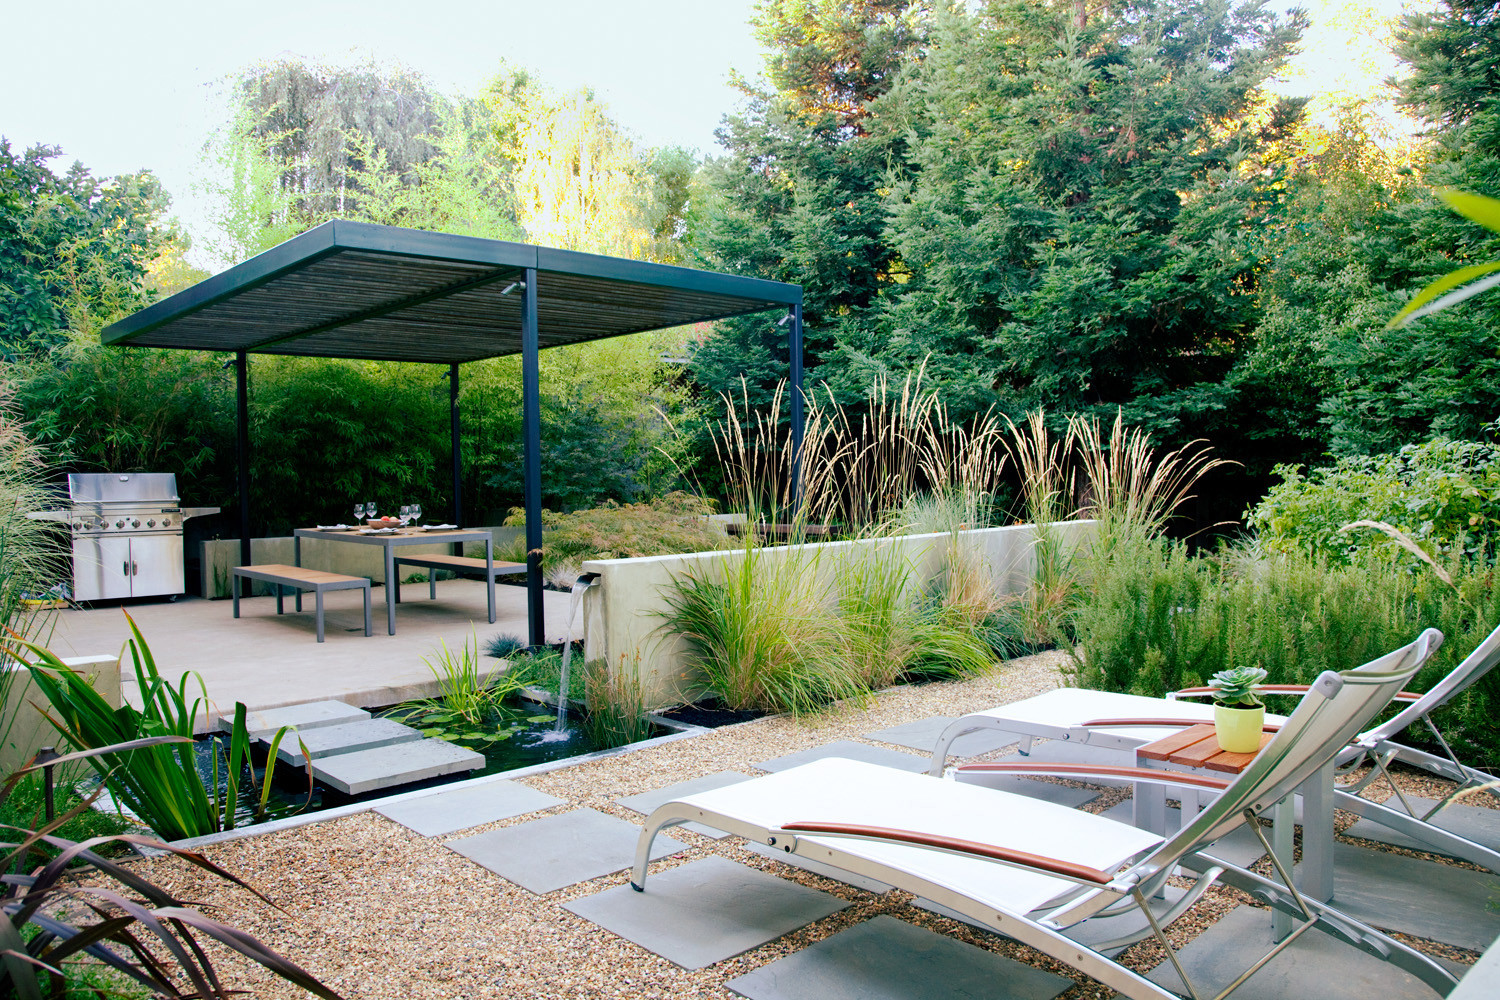 Best ideas about Small Backyard Design . Save or Pin Small Backyard Design Ideas Sunset Magazine Now.